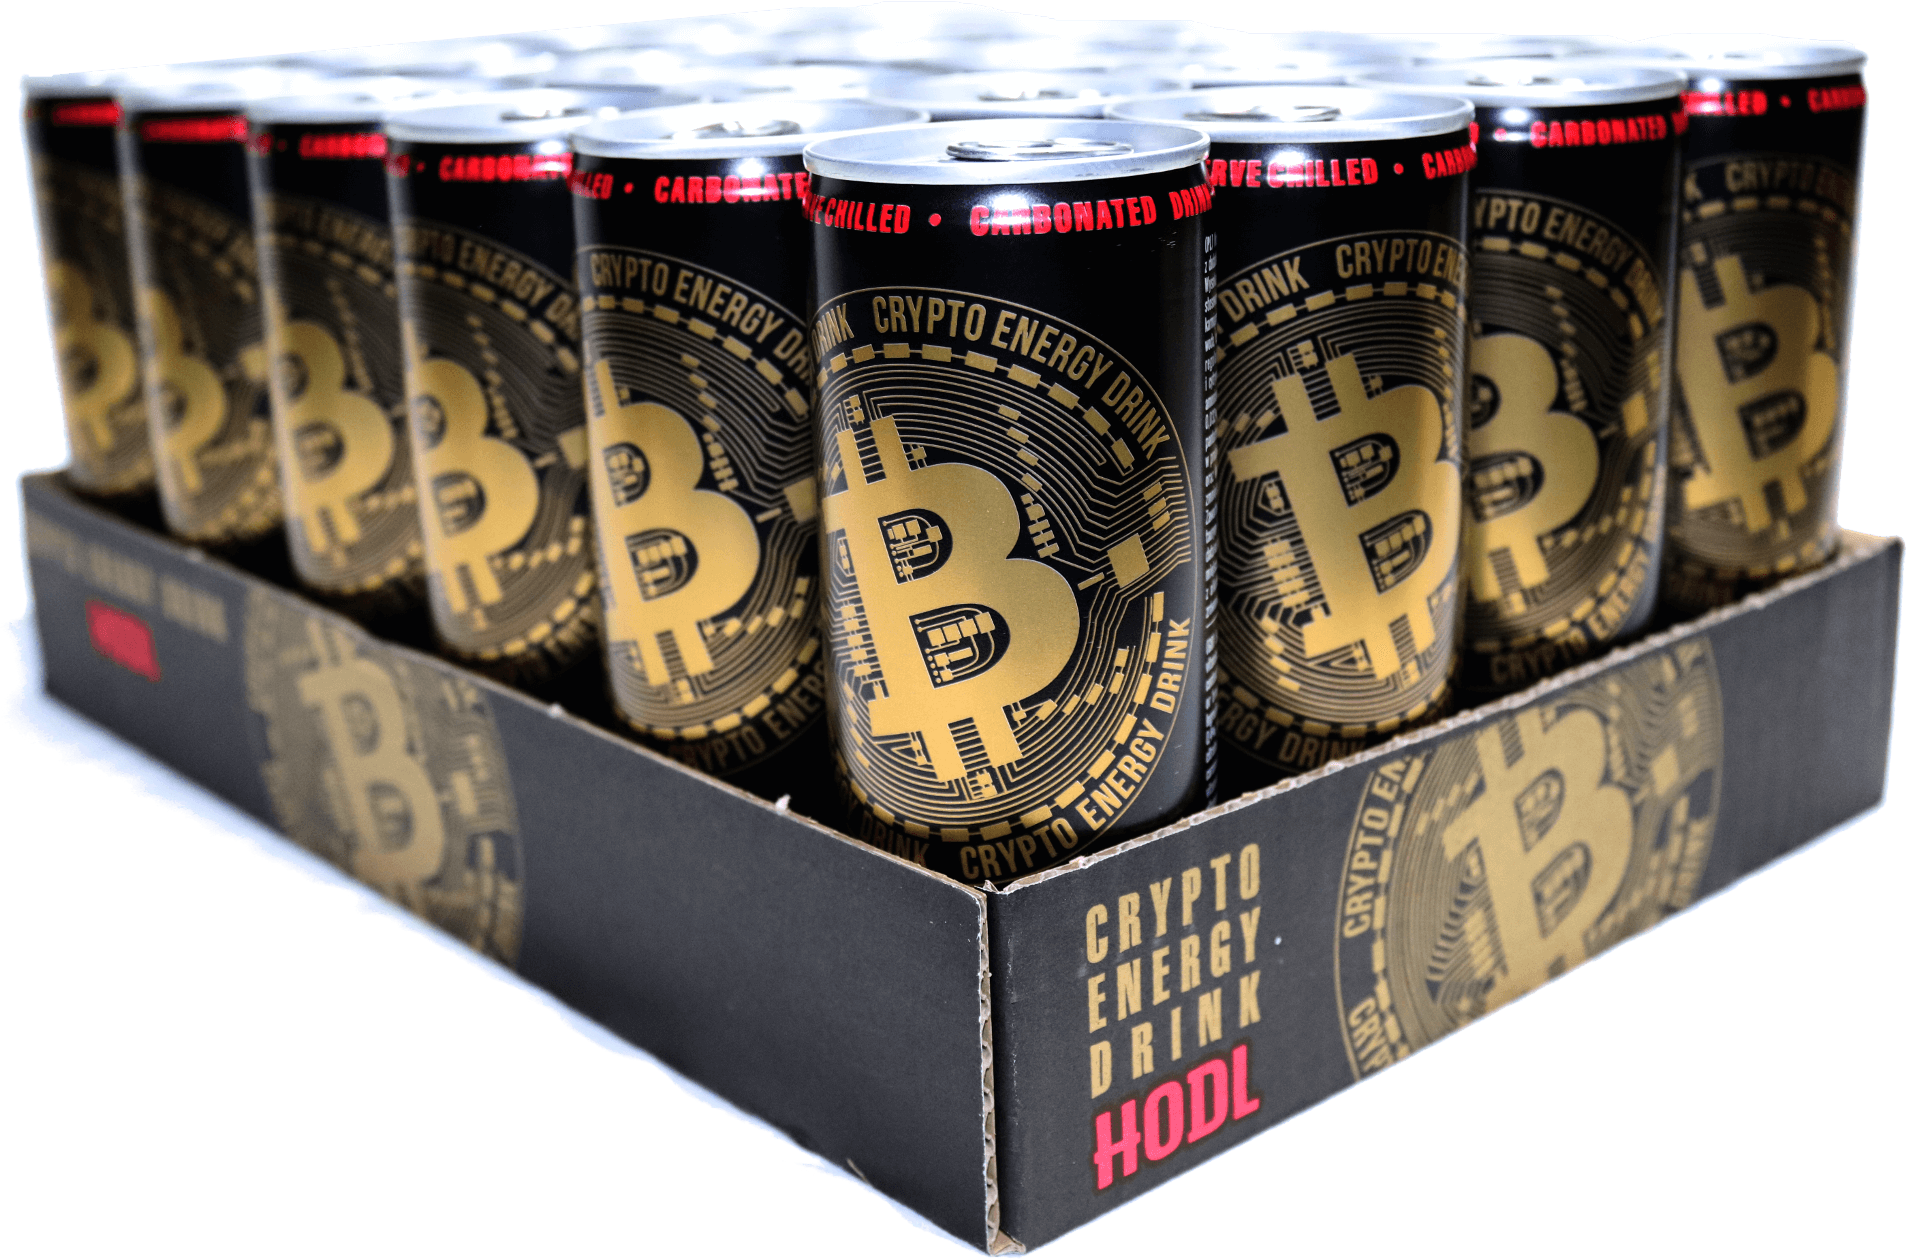 24 pcs. Crypto Energy Drink